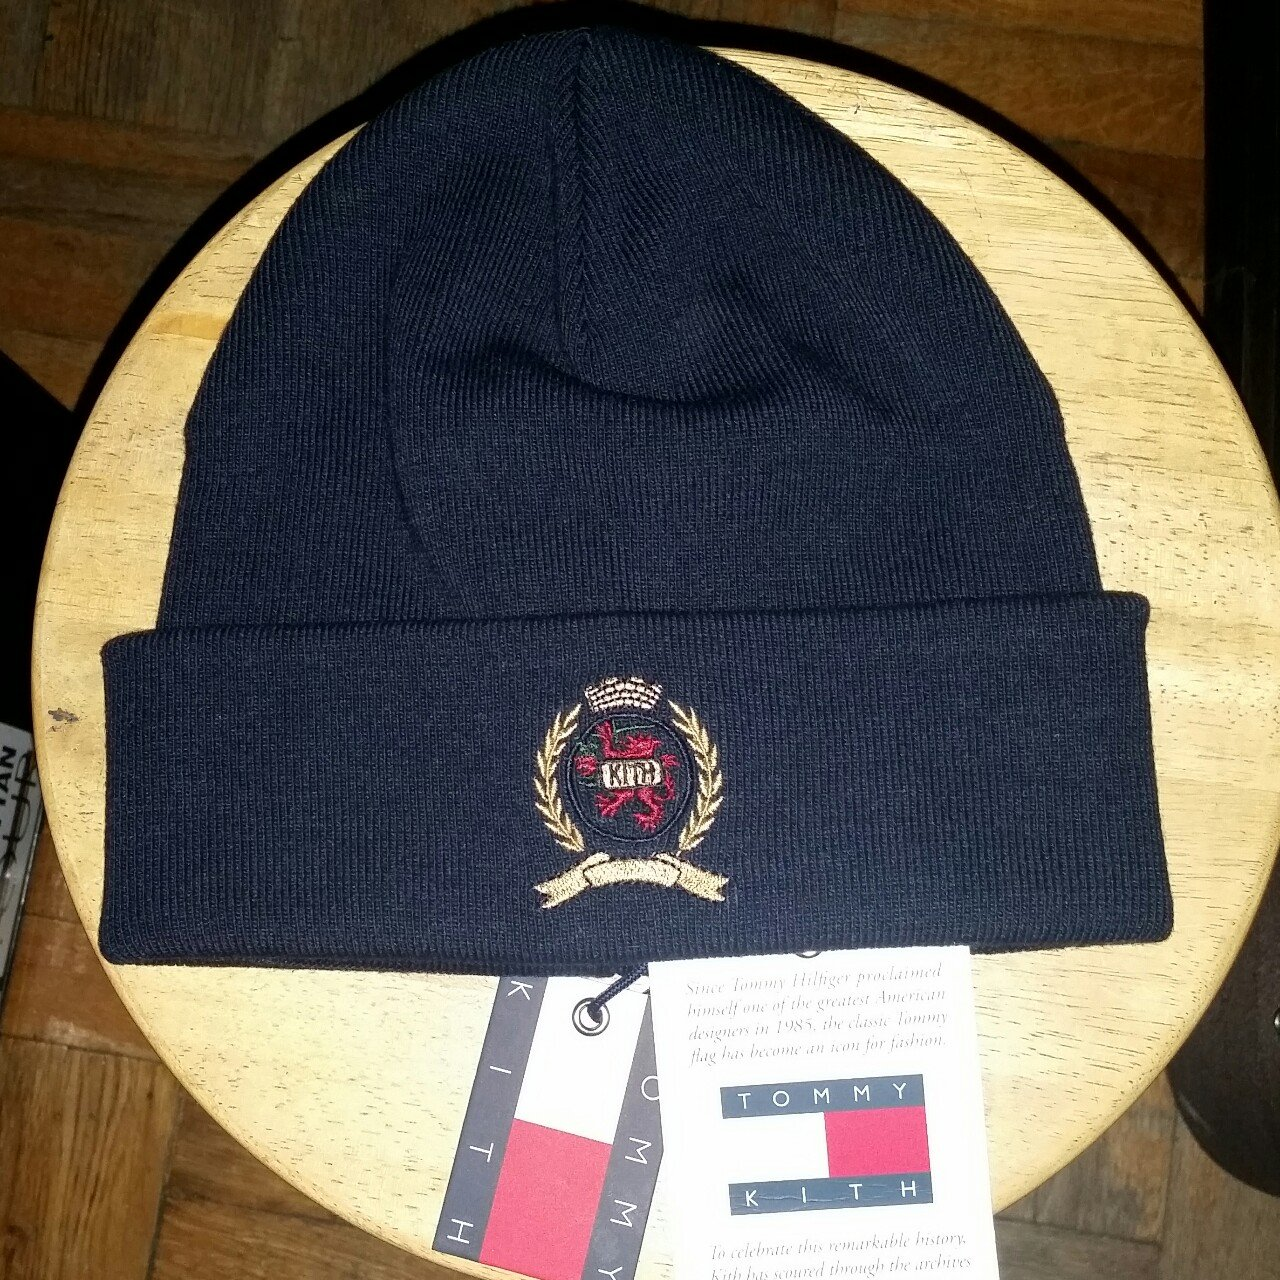 ae2437701c3 100% authentic Kith x Tommy Hilfiger Crest beanie size  one - Depop